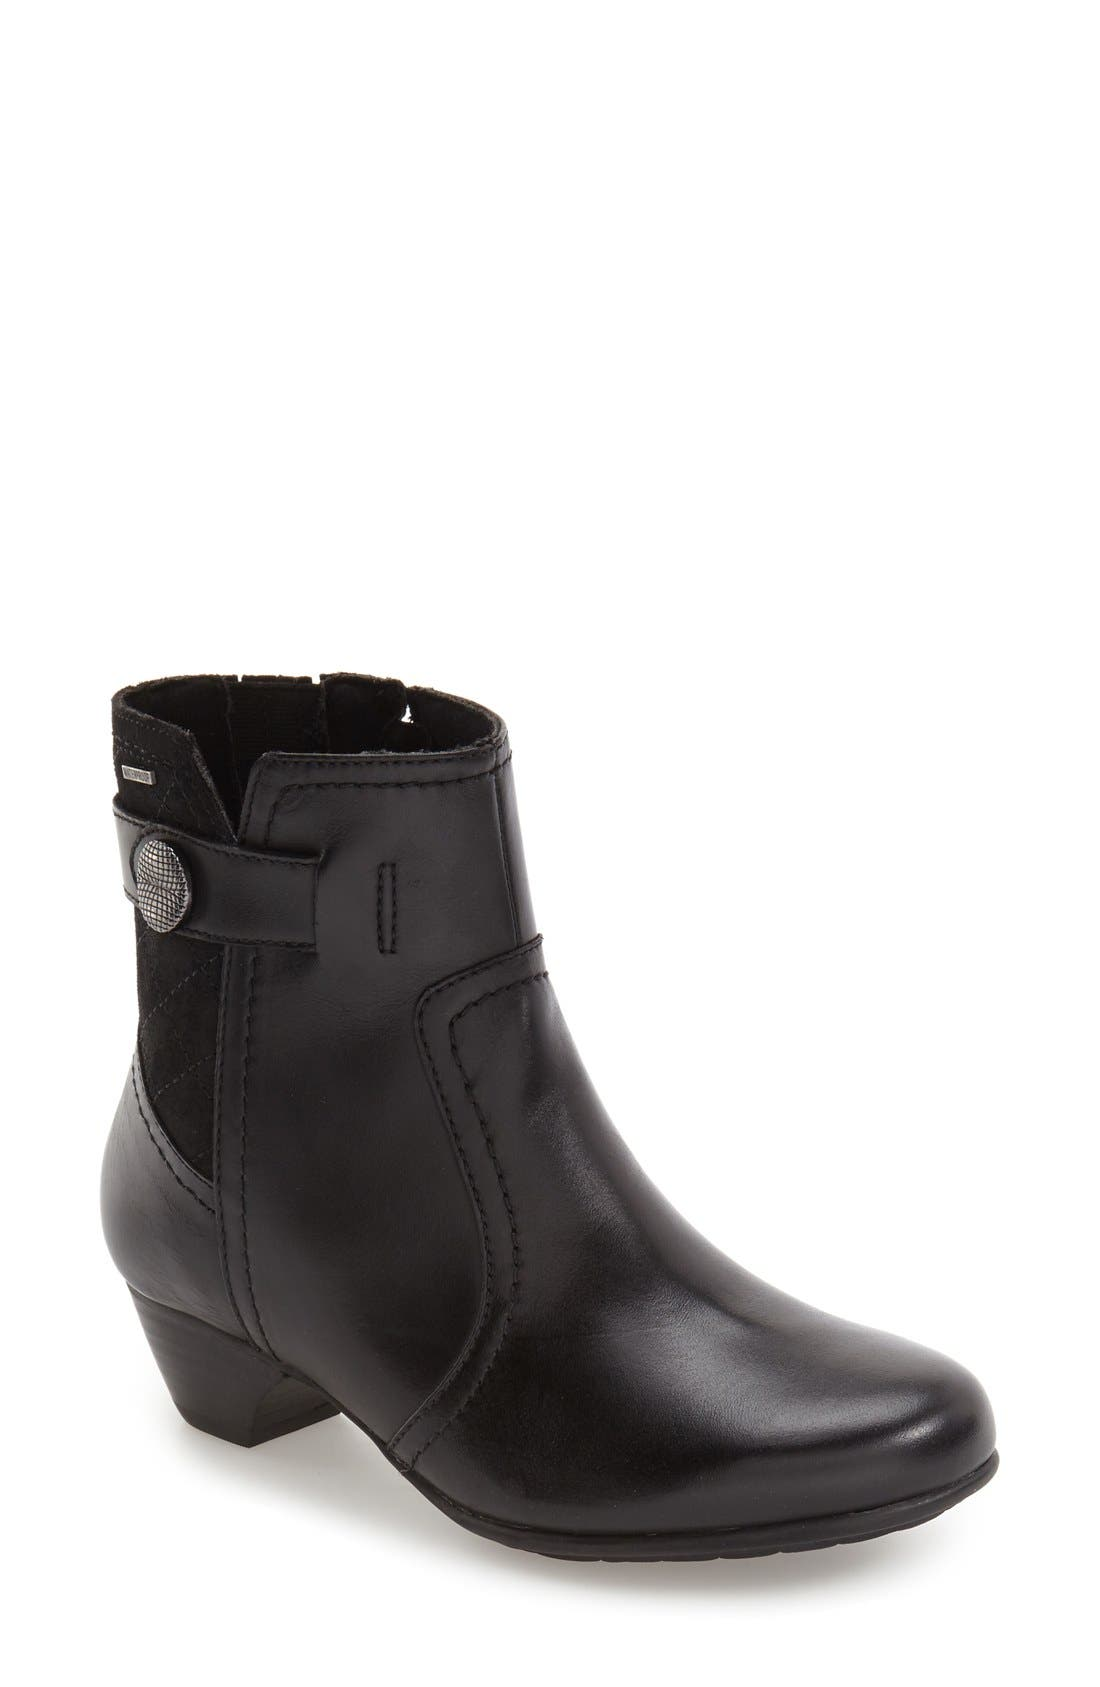 Women's Børn Heeled Boots, Boots for Women | Nordstrom